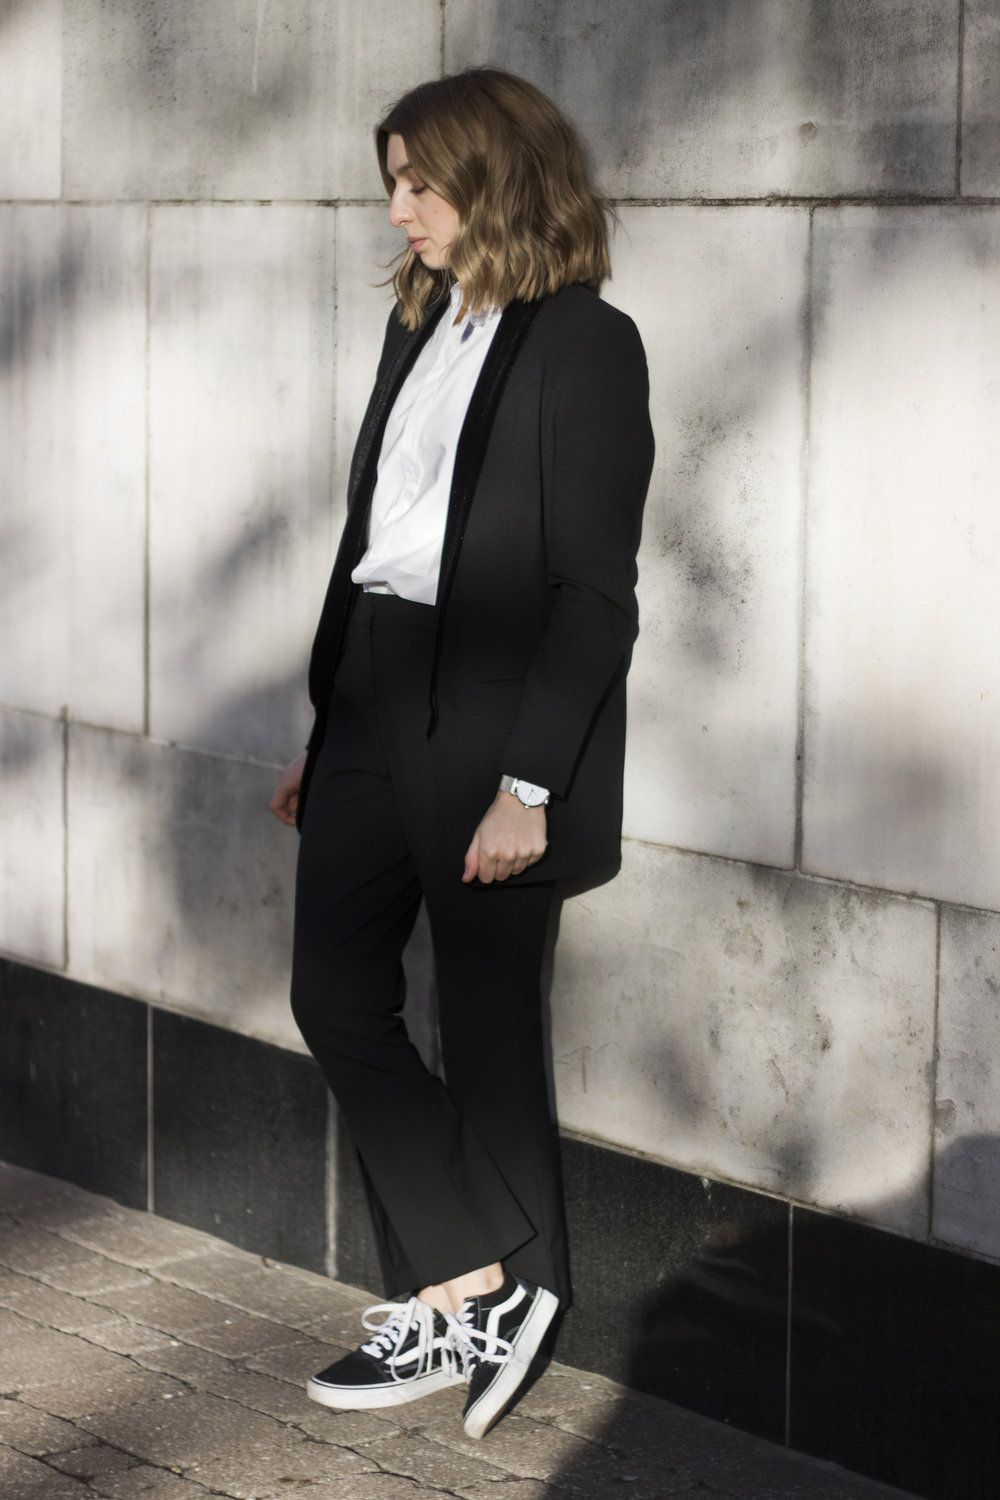 Black Suit White Shirt Vans Styleminimalism